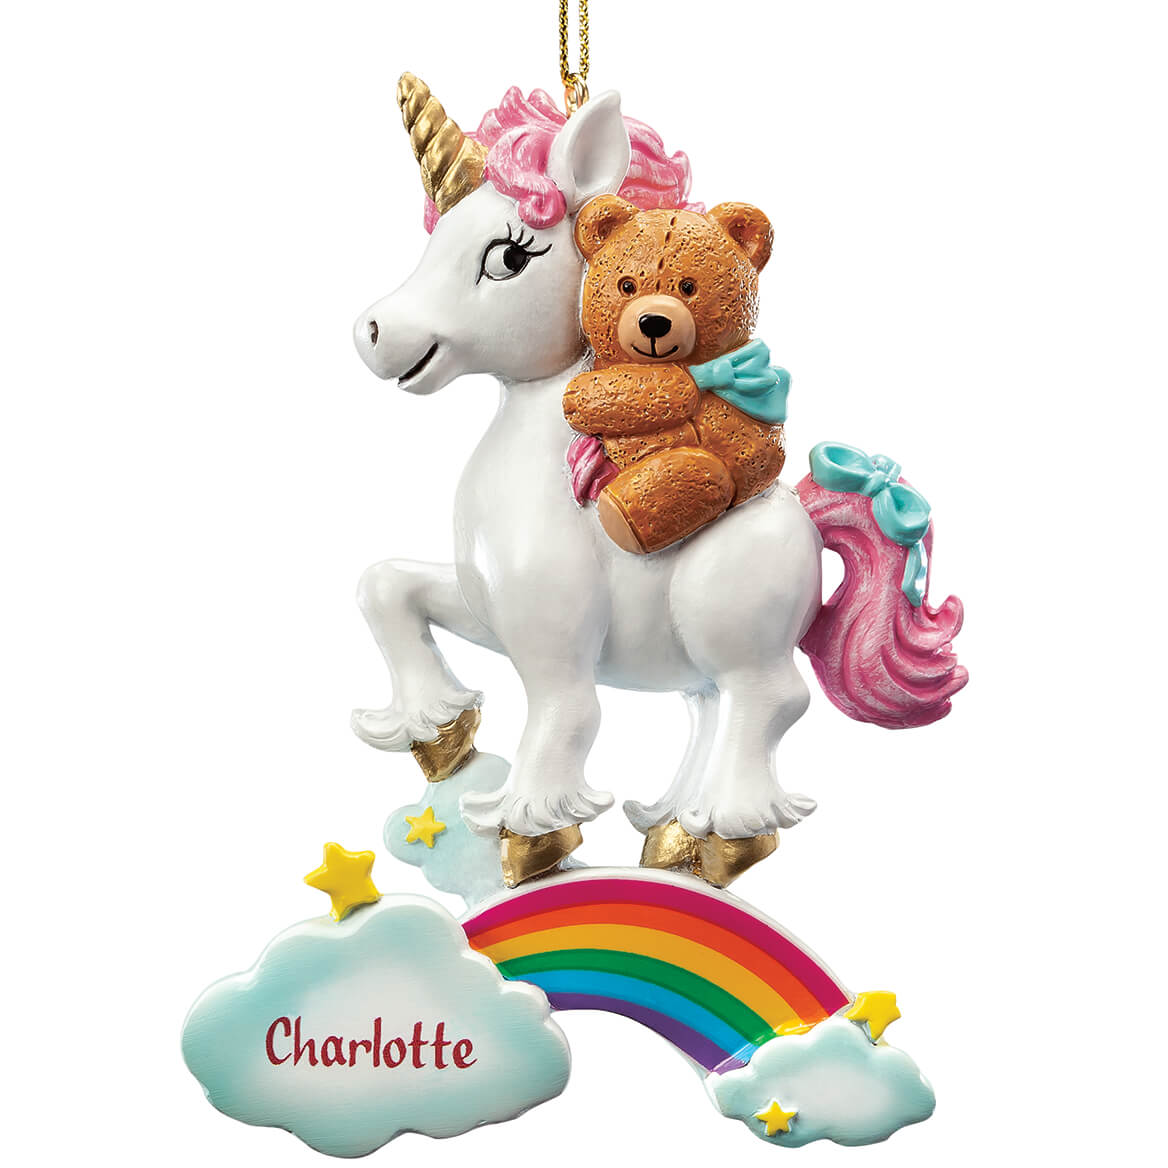 Personalized Teddy Bear & Unicorn Ornament-368110